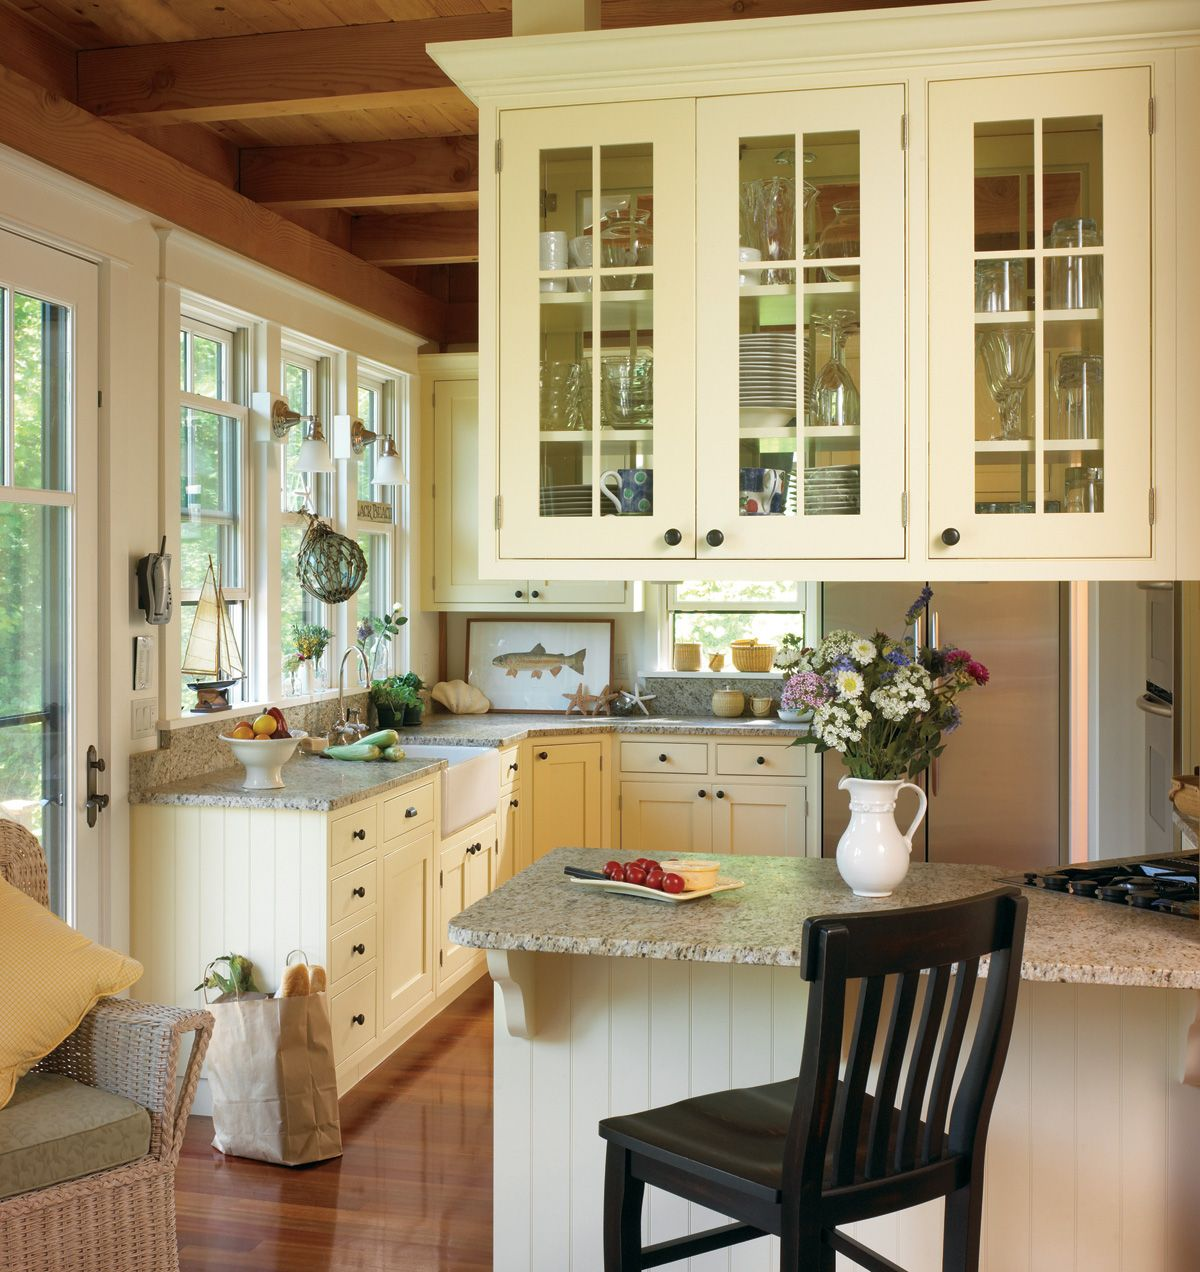 Particular American Kitchen Country Kitchendesignskitchen American Kitchen Remodel French Country French Country Cottage Kitchen S kitchen French Country Cottage Kitchen Designs